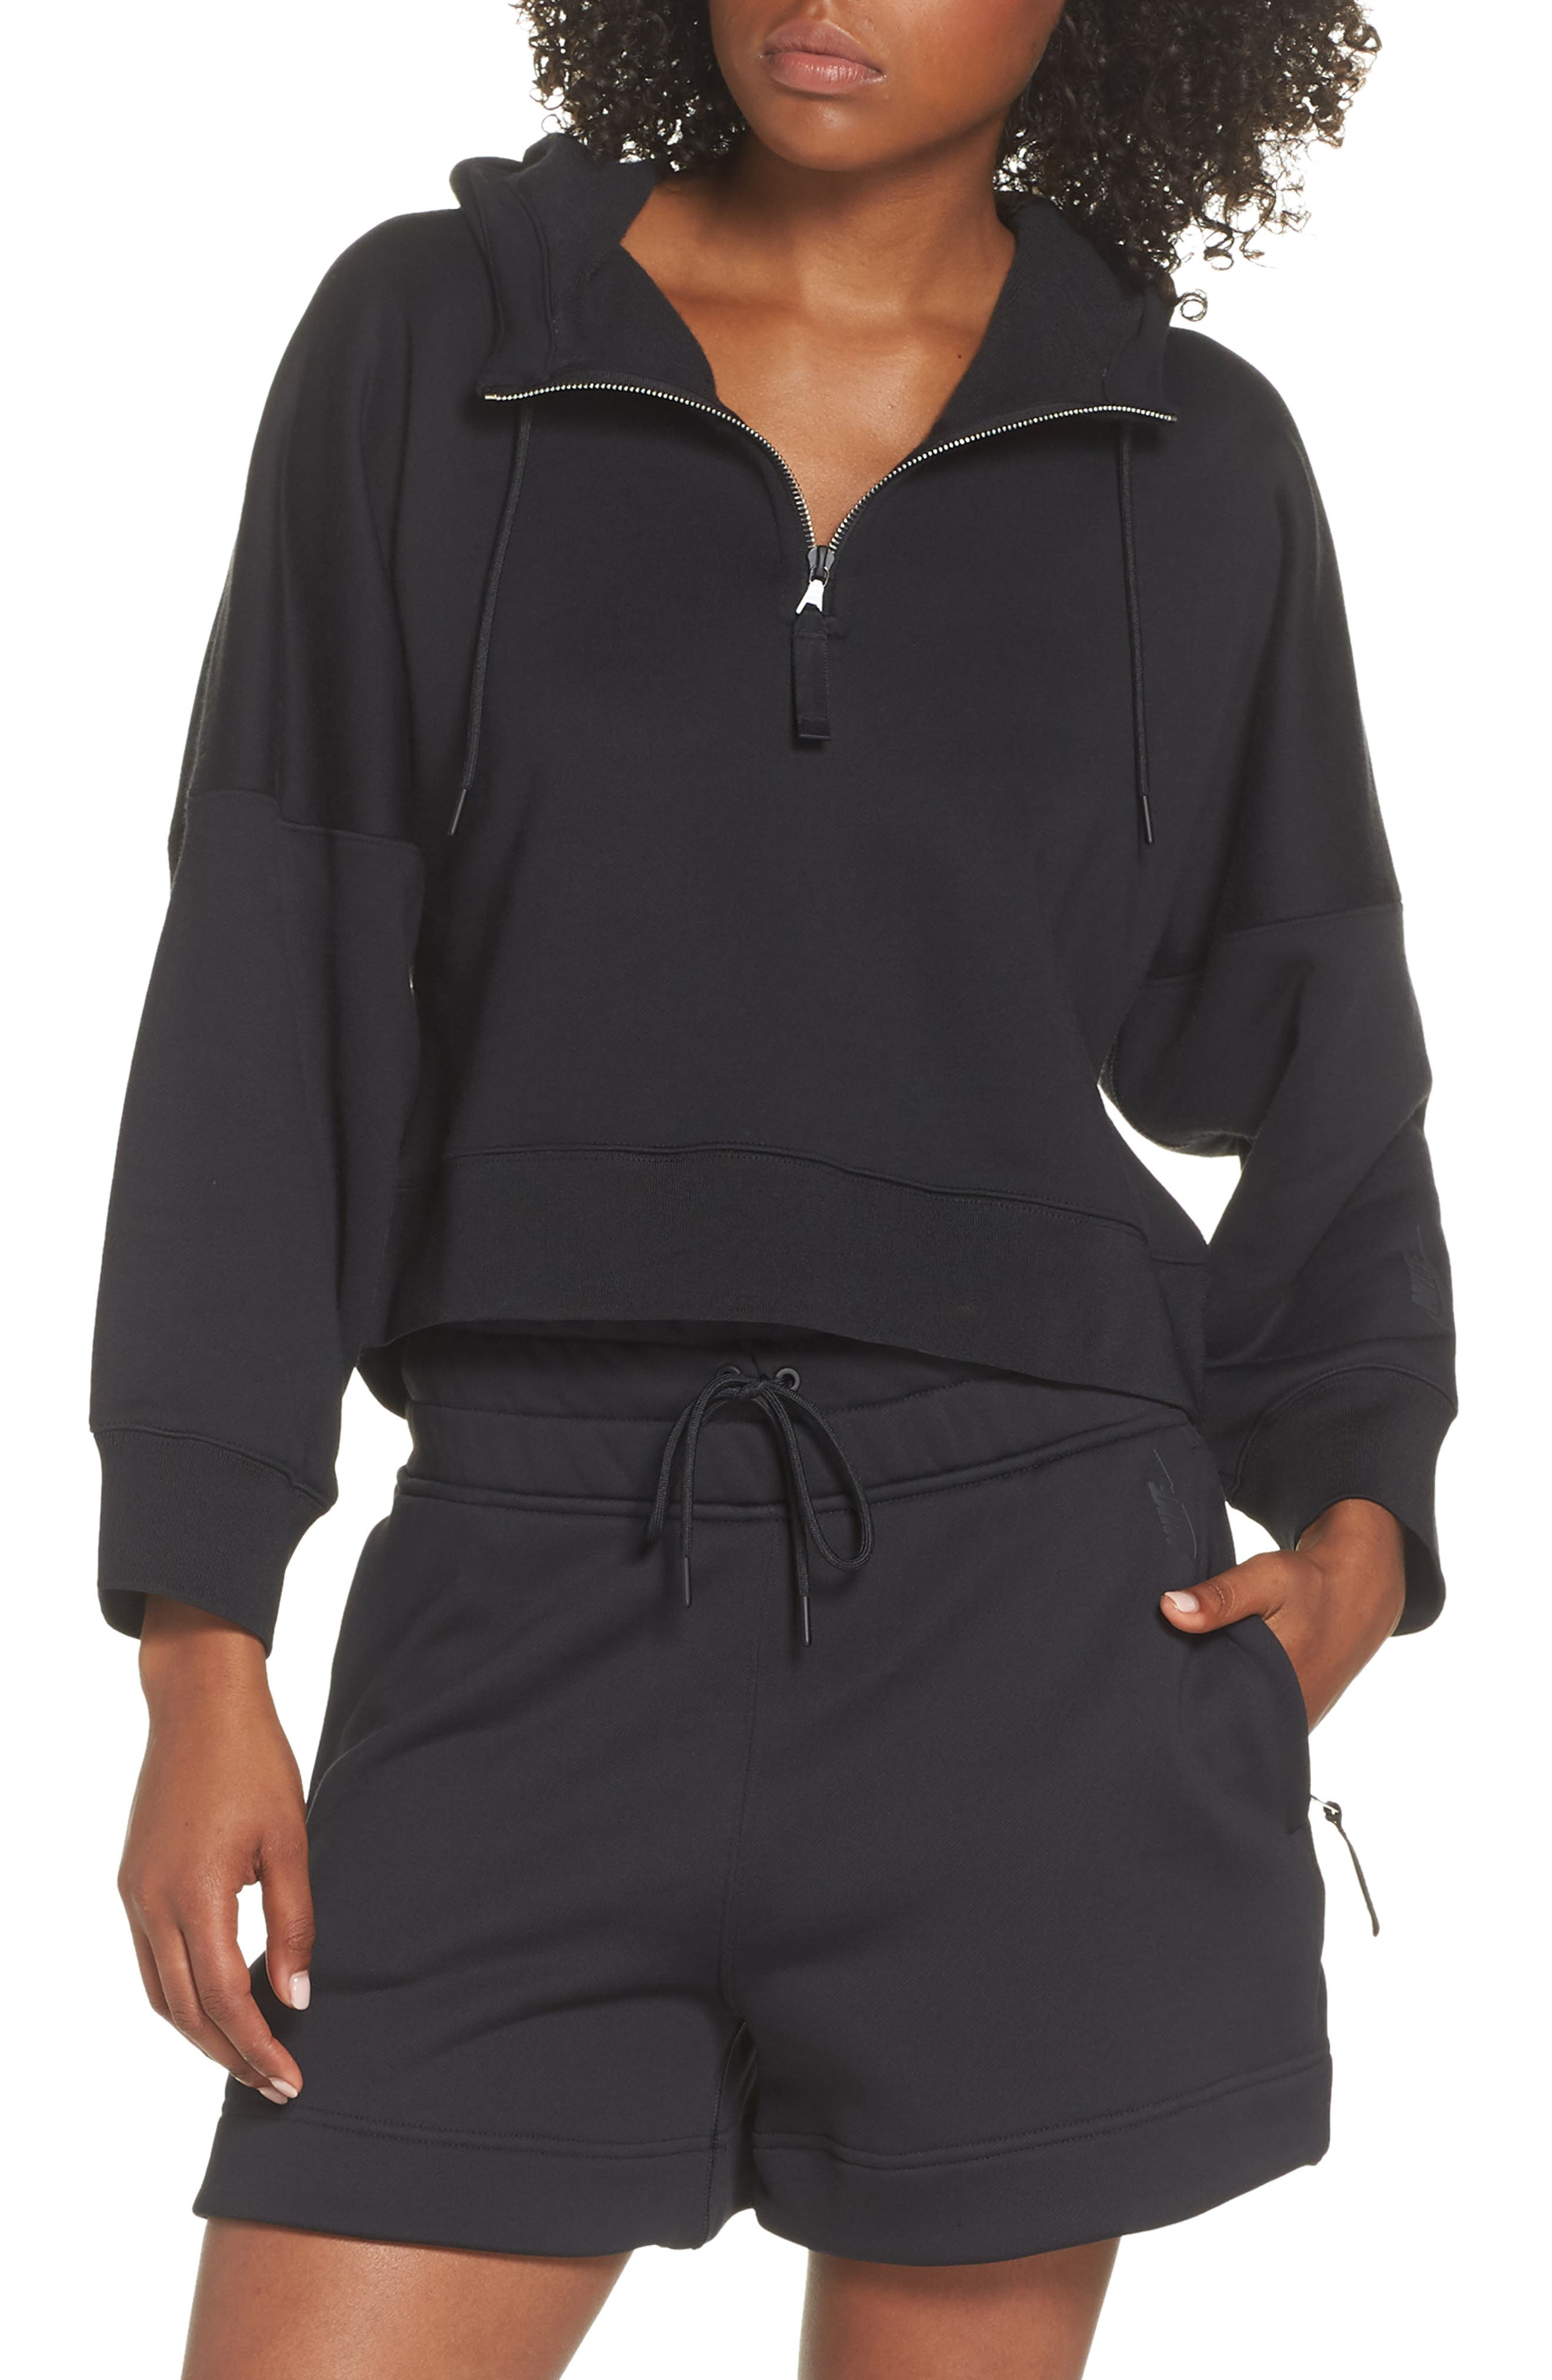 NikeLab Collection Women's Half Zip Fleece Hoodie,                             Main thumbnail 1, color,                             BLACK/ BLACK